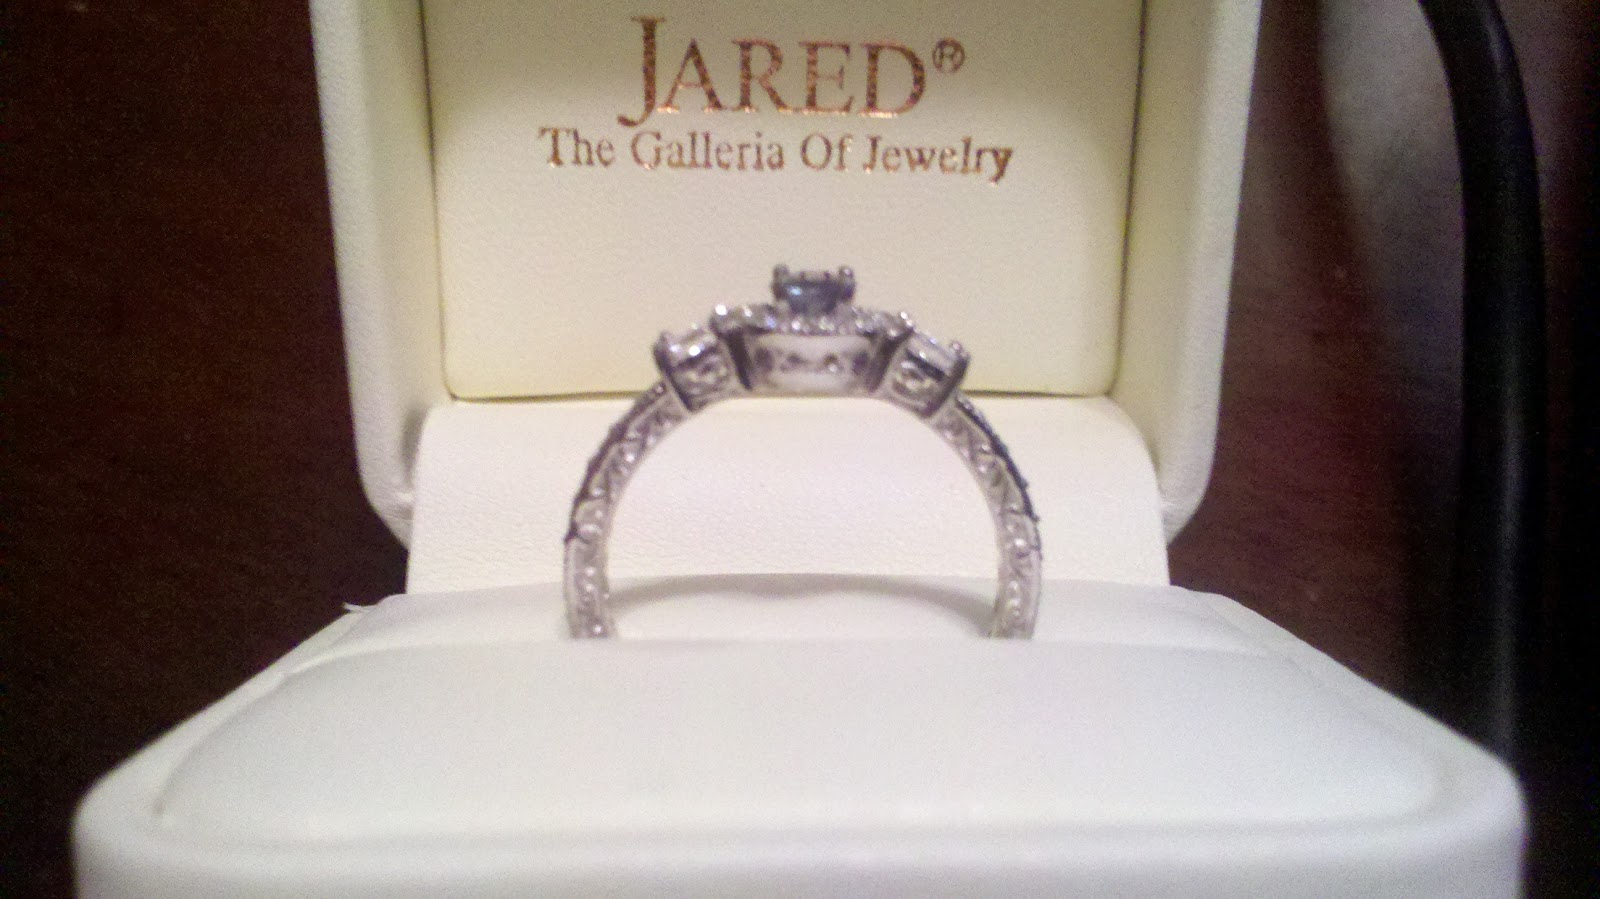 Natural alexandrite ring for Jared galleria of jewelry selma tx